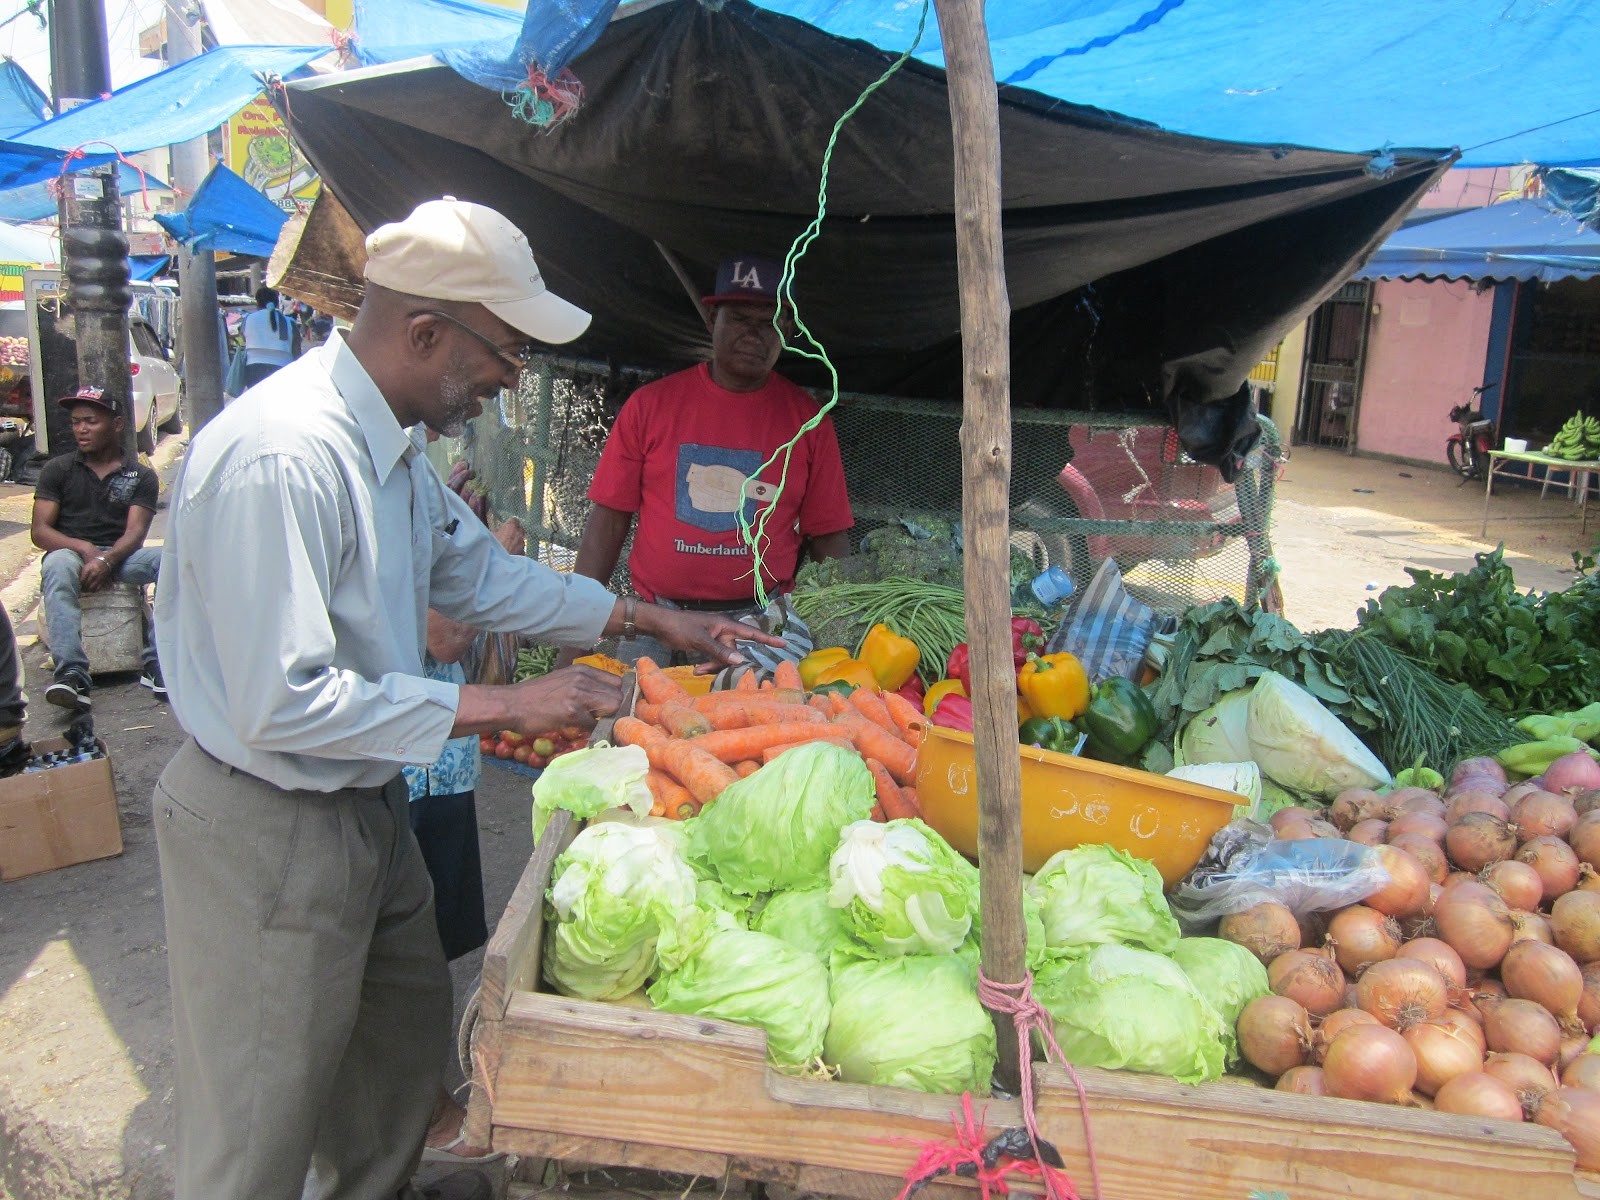 marketing strategies of tomato farmers Marketing practices prevailing in the district covering regulated marketing, contract farming, direct marketing, retail chain linkage, futures market, spot market, processing and export of agricultural produce etc.